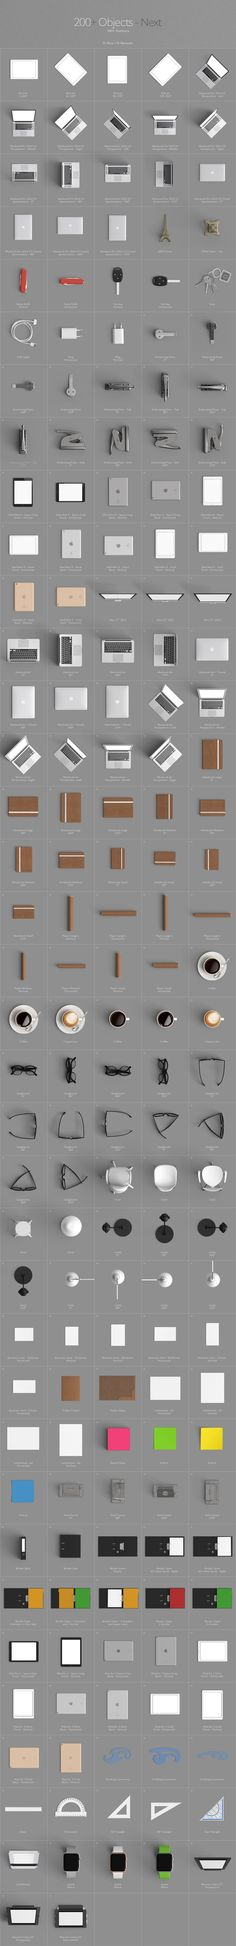 header stationery mock up creator by qeaql on creative market